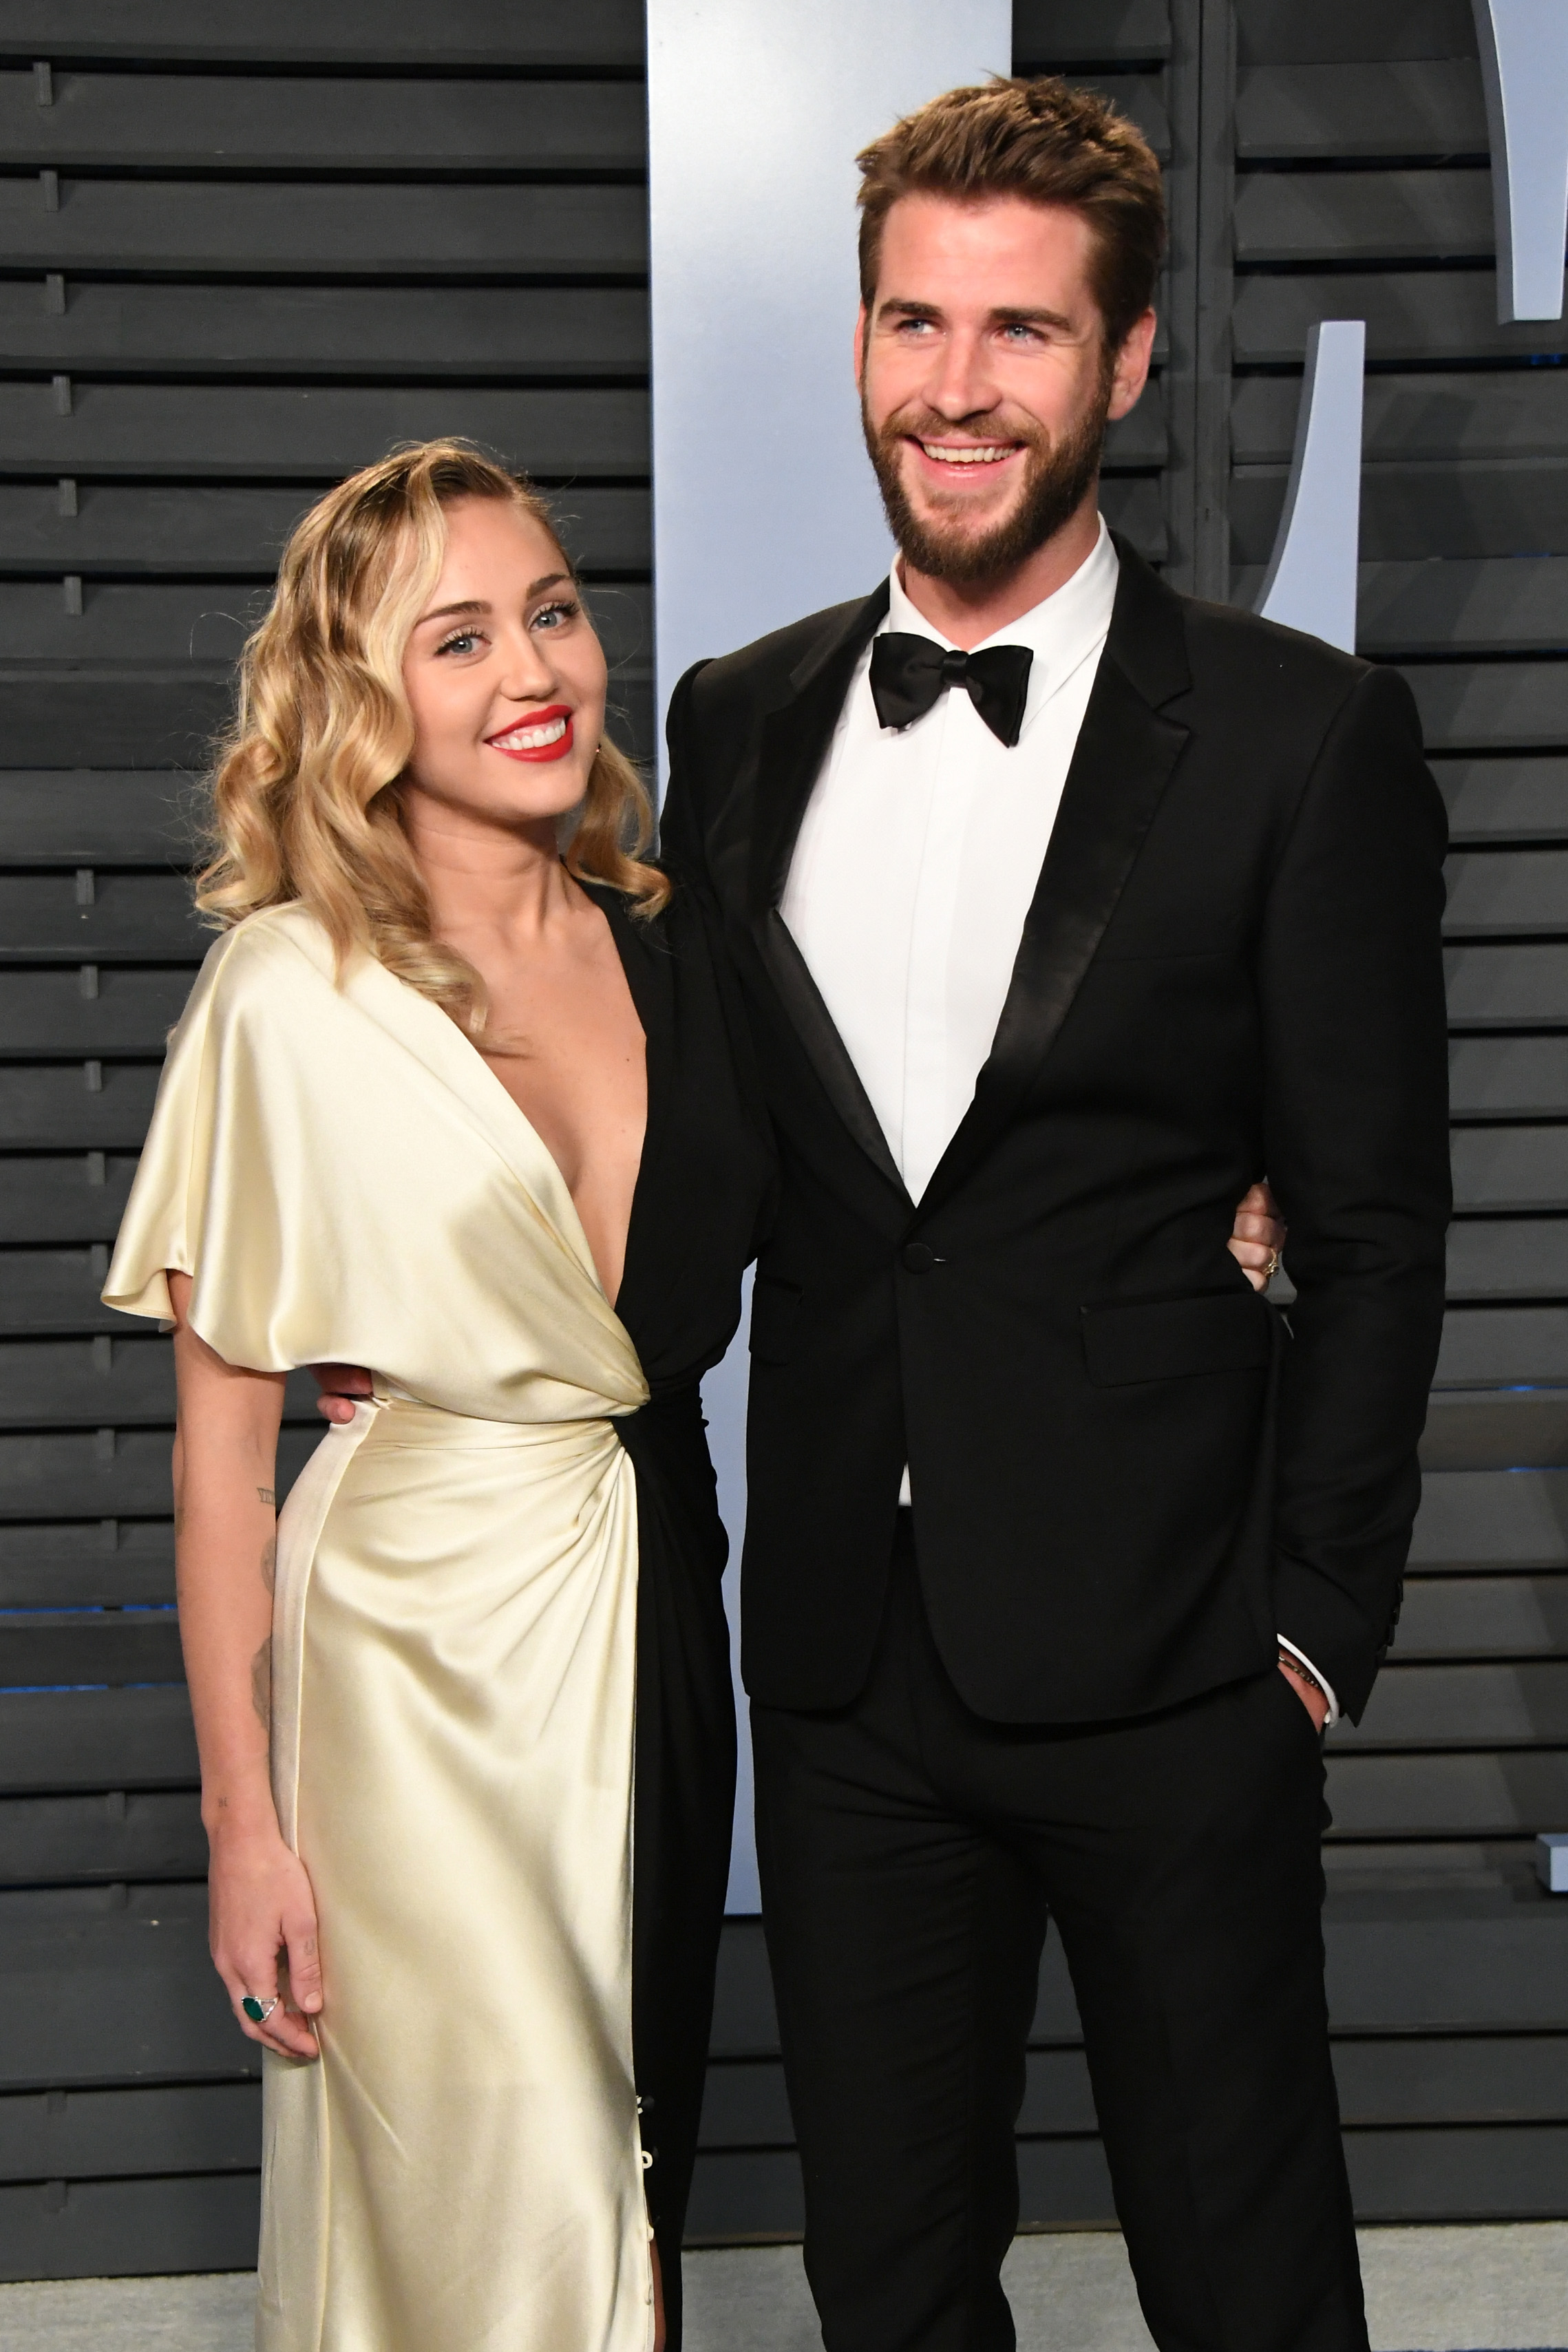 Miley Cyrus Predicted Her Marriage to Liam Hemsworth 10 Years Ago